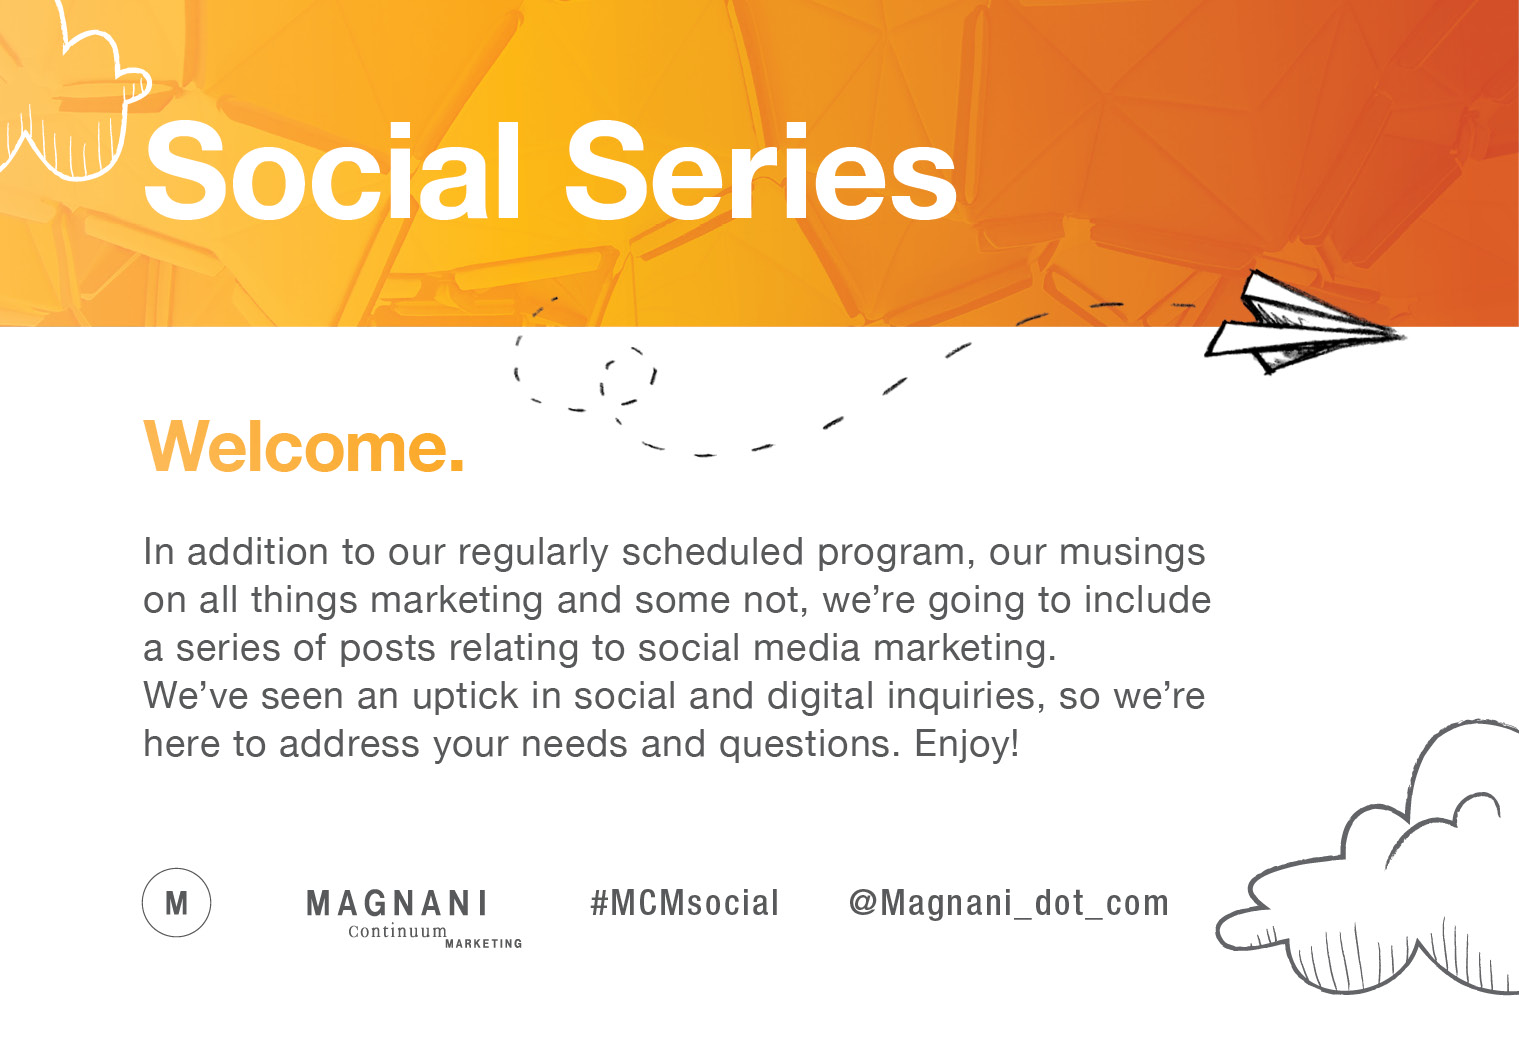 The Magnani Social Series is an ongoing series focused on all things social media.